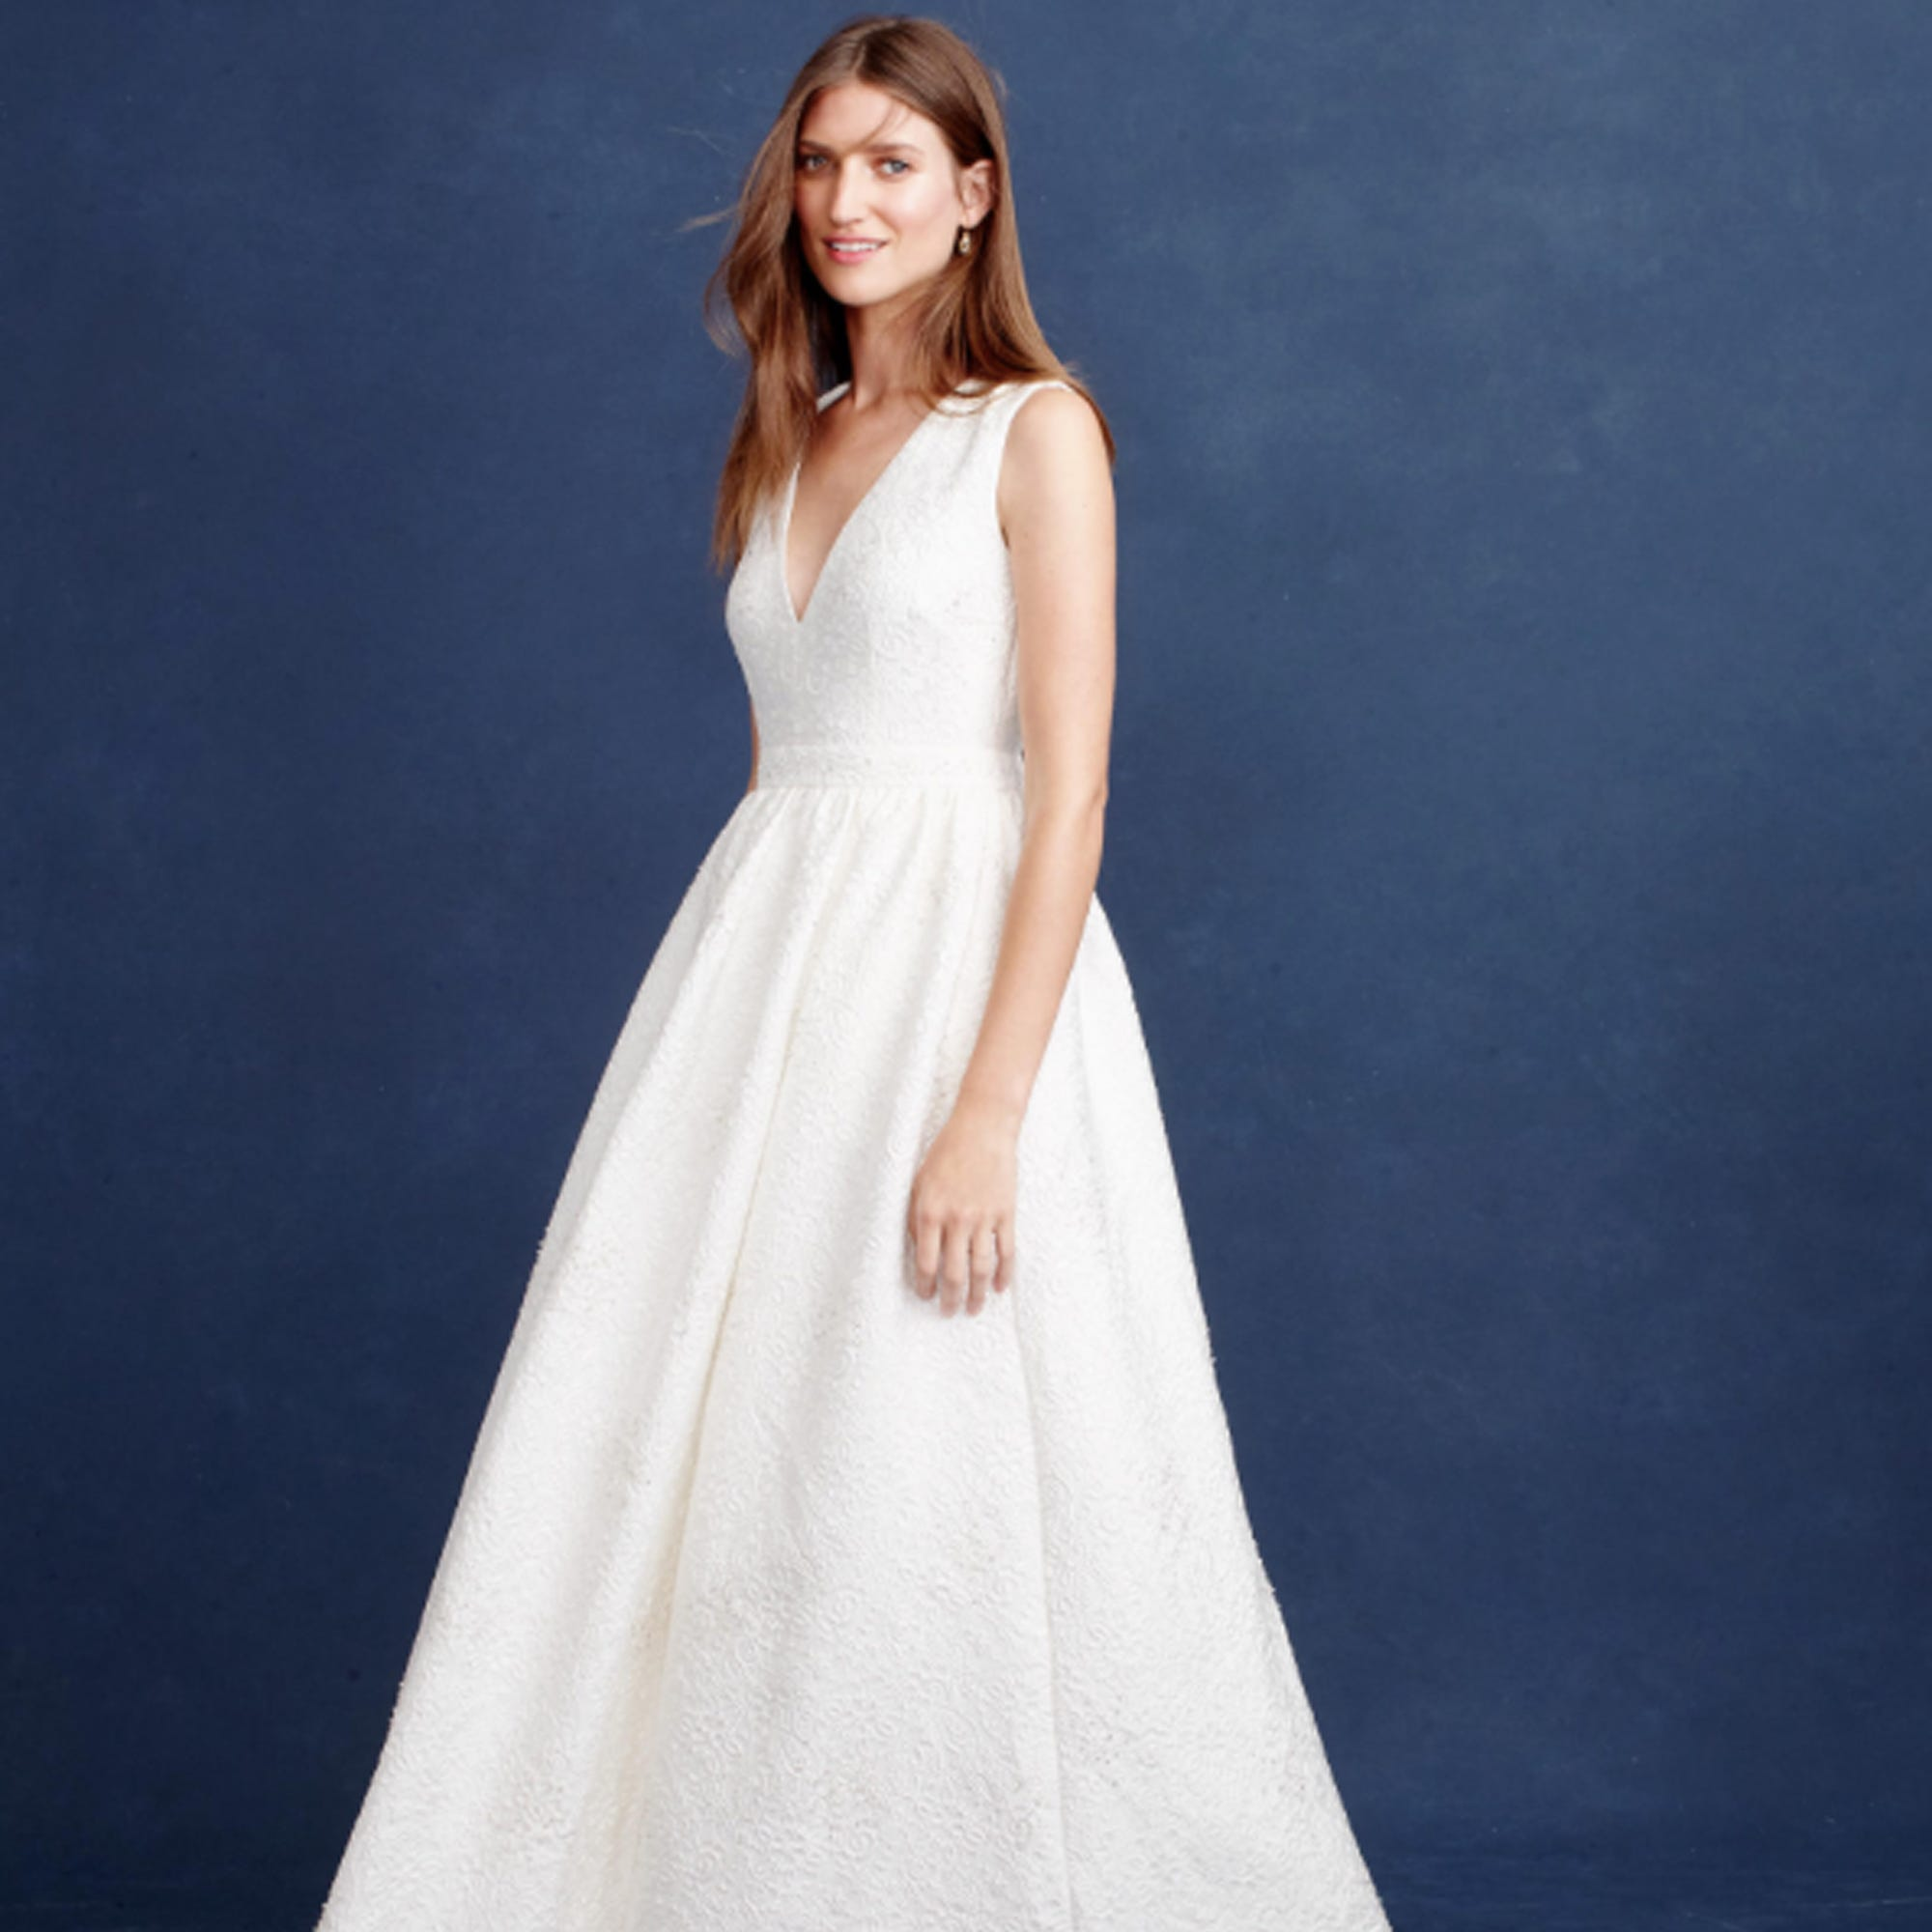 J Crew Discontinues Bridal Collection